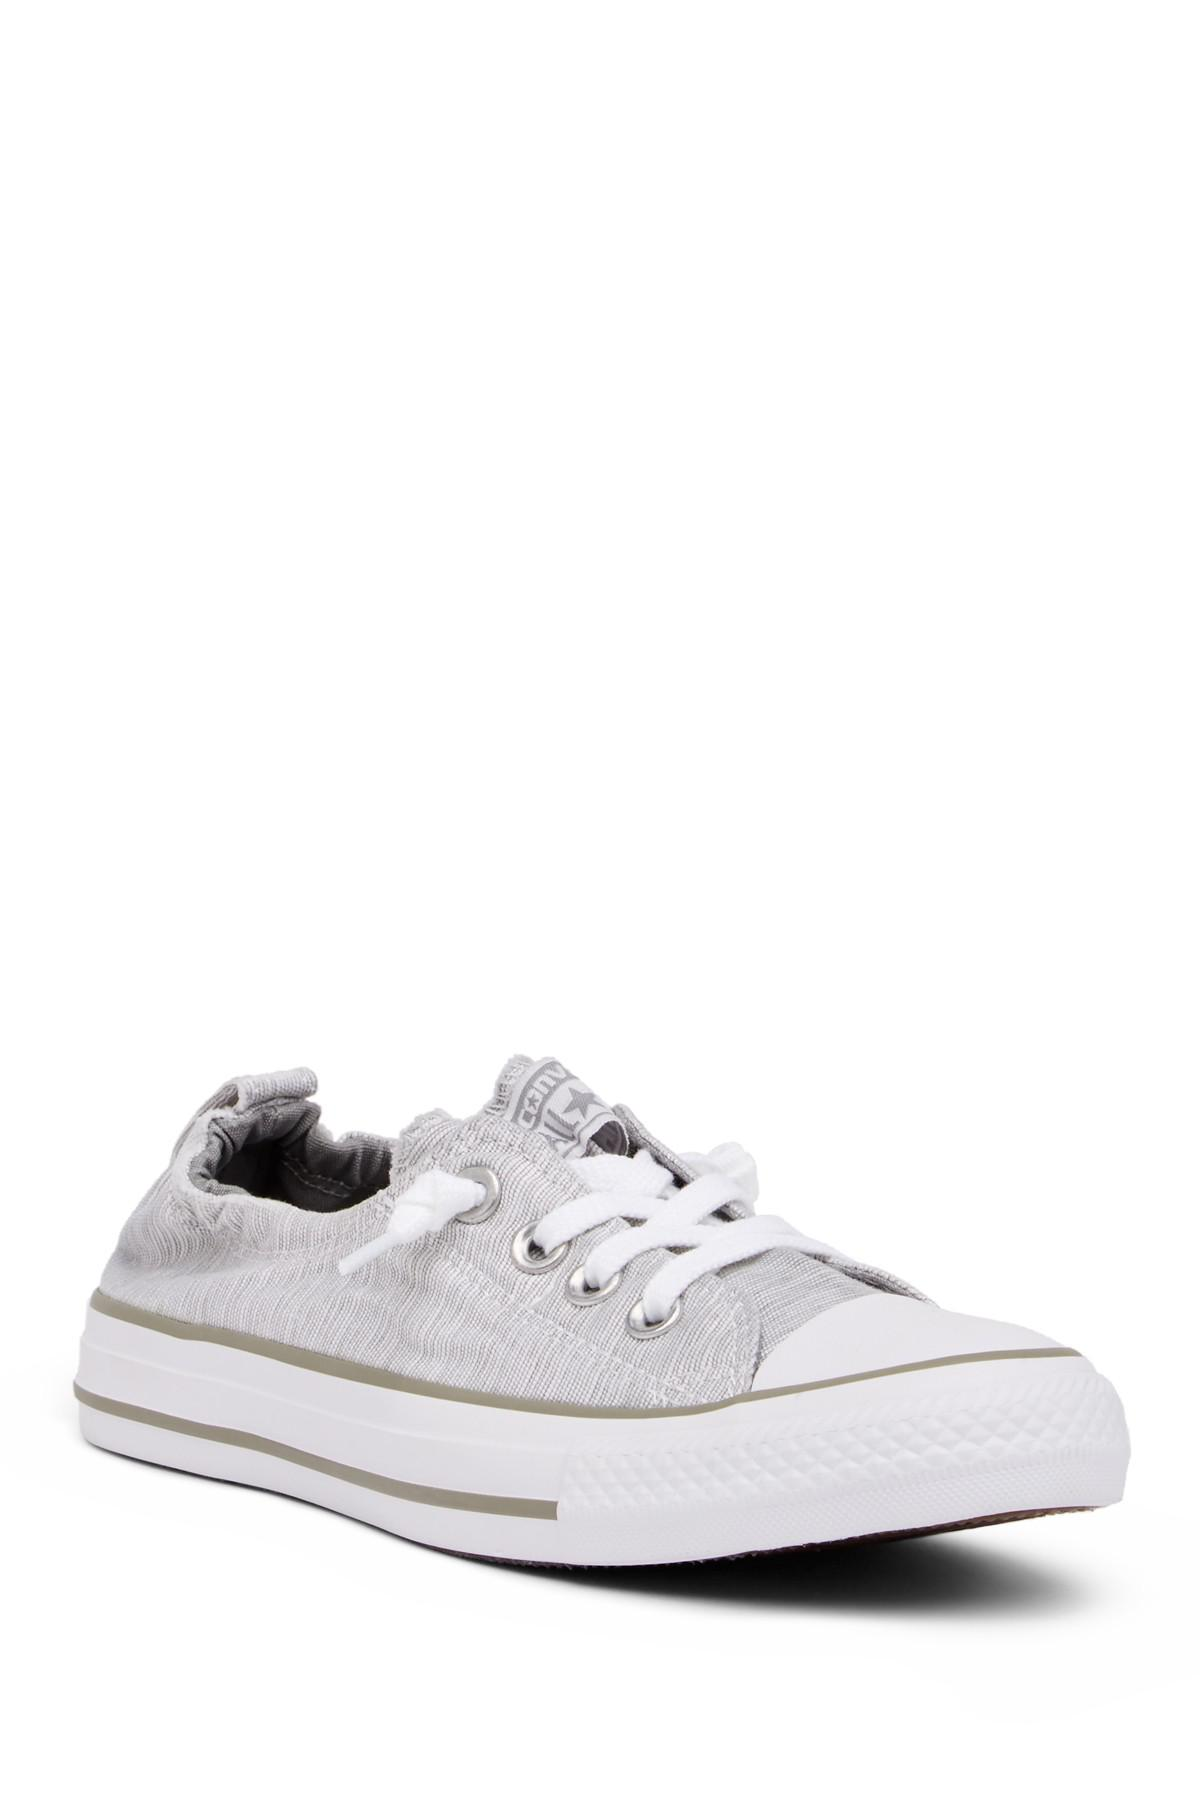 79c22139812c Gallery. Previously sold at  Nordstrom Rack · Women s Converse Chuck Taylor  Women s Asics Kayano Women s Leather Slip On Sneakers ...